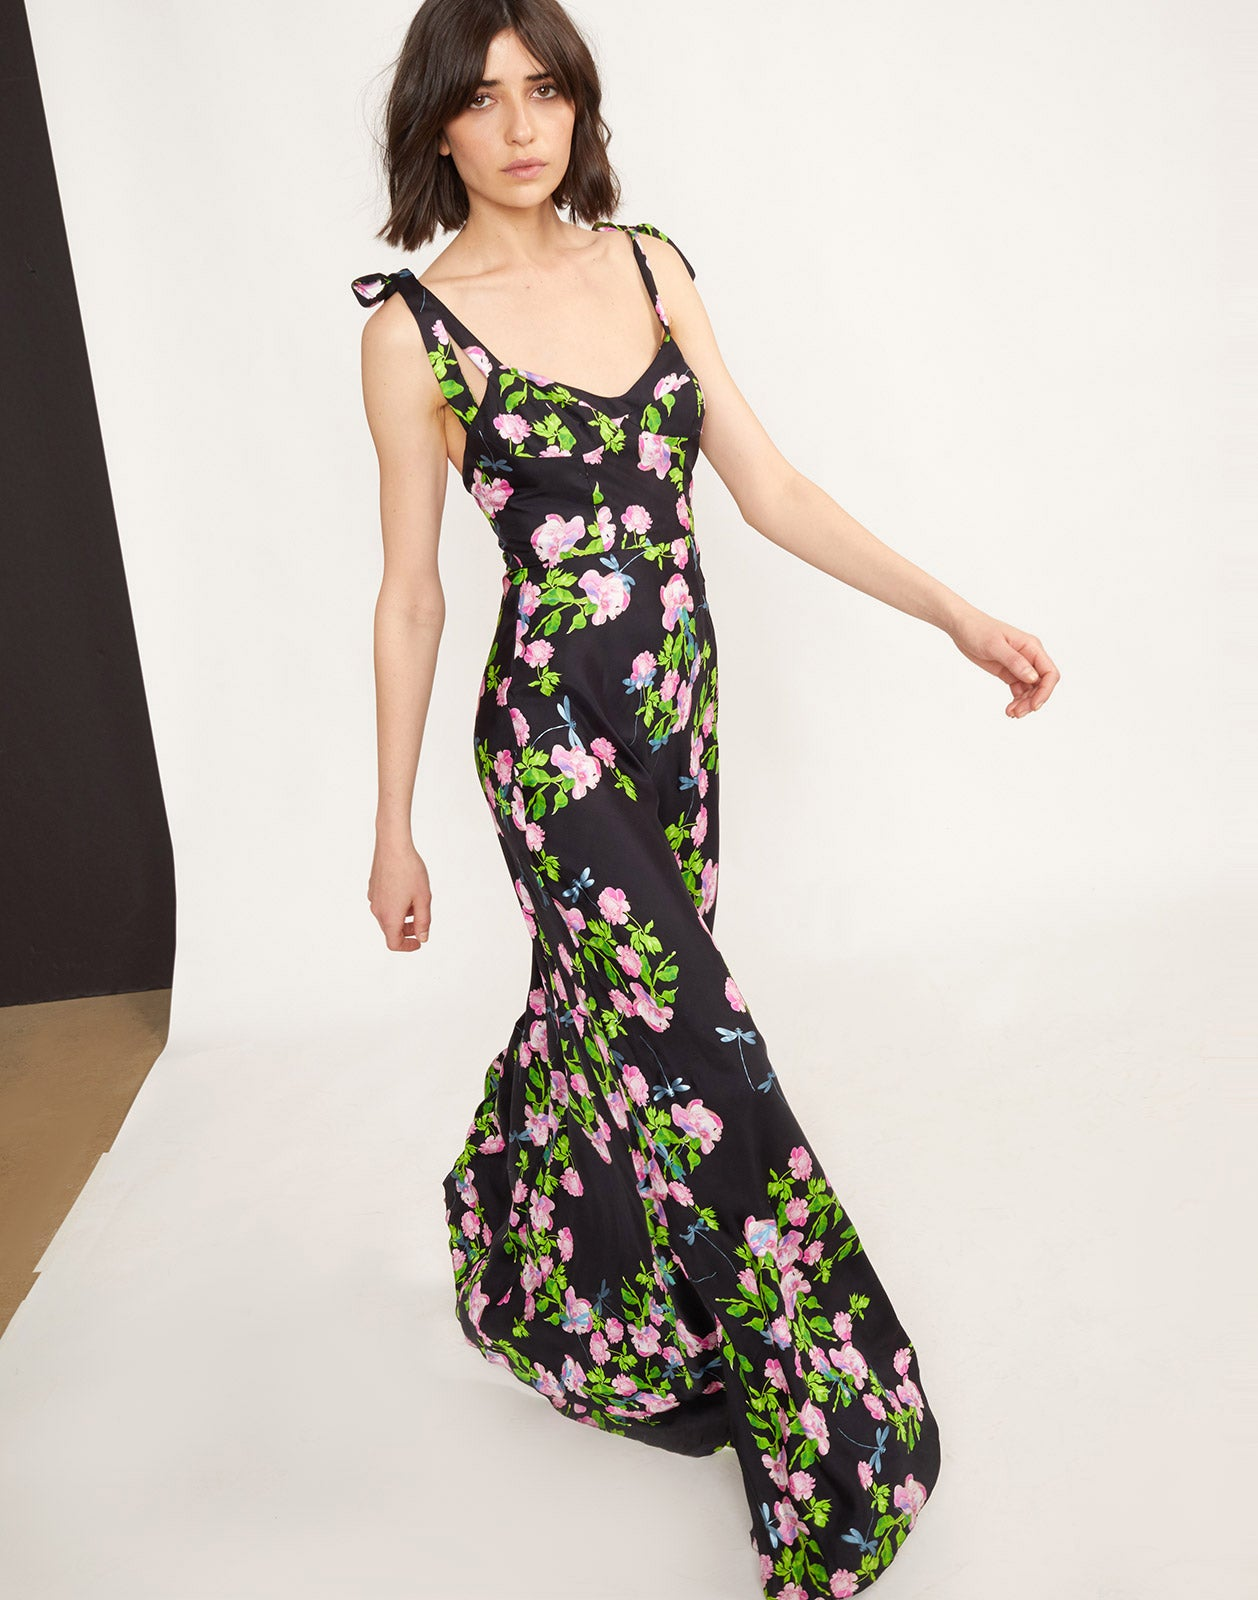 Full front view of the Ten Rose Maxi Dress